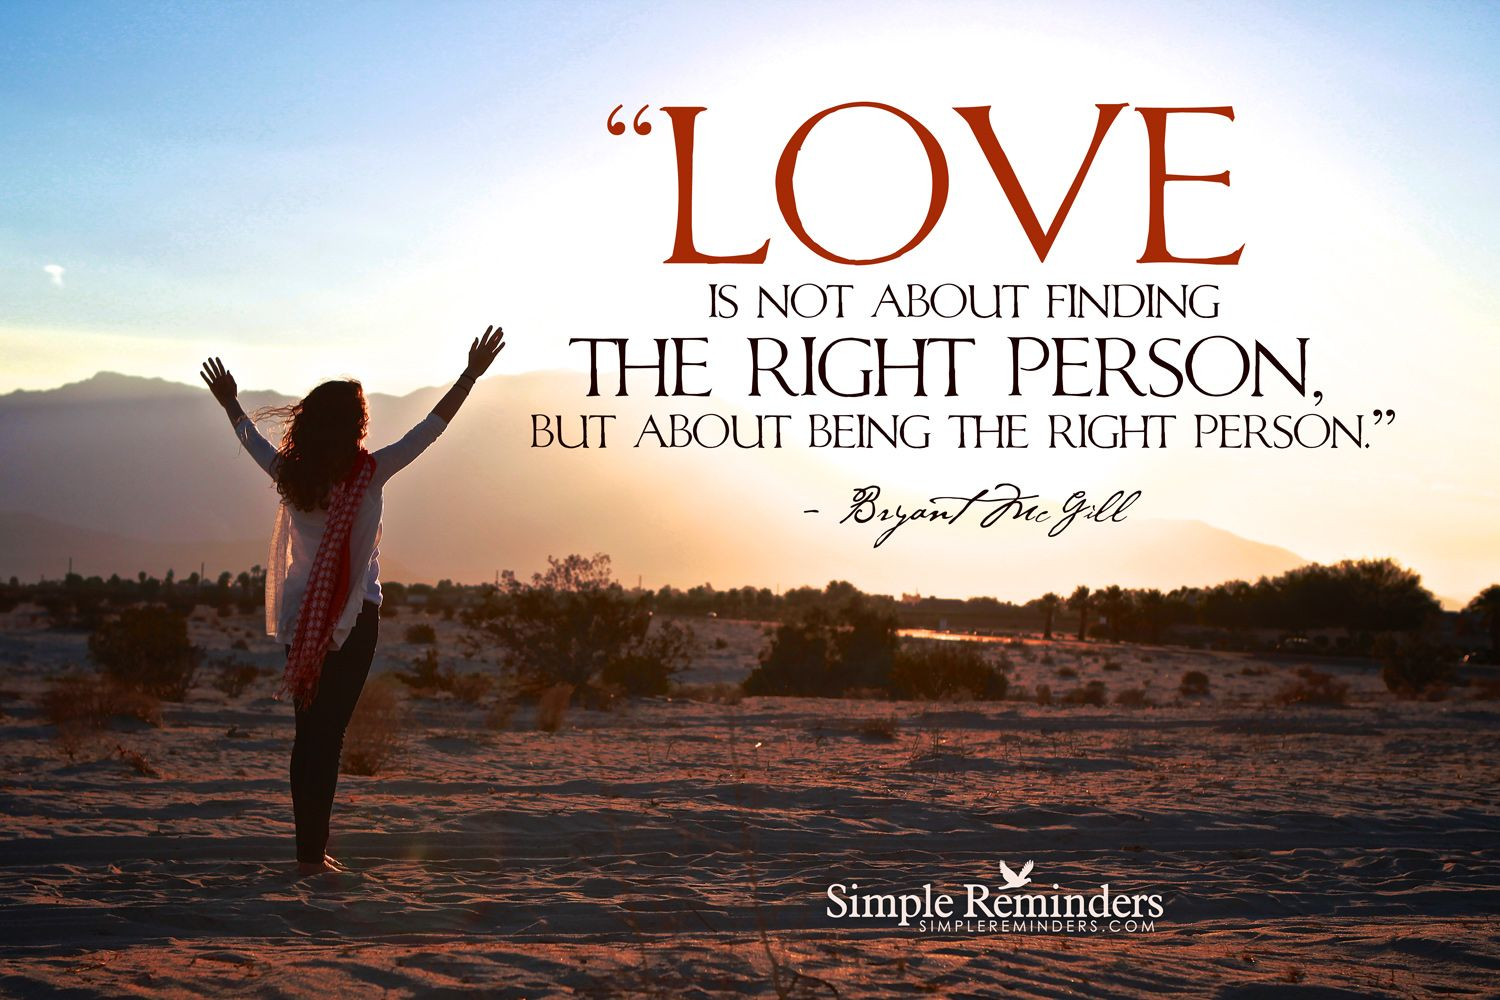 Love is not about finding the right person, but about being the right person. ~Bryant McGill  #love #soulmate #lover #partner  @Simple Reminders